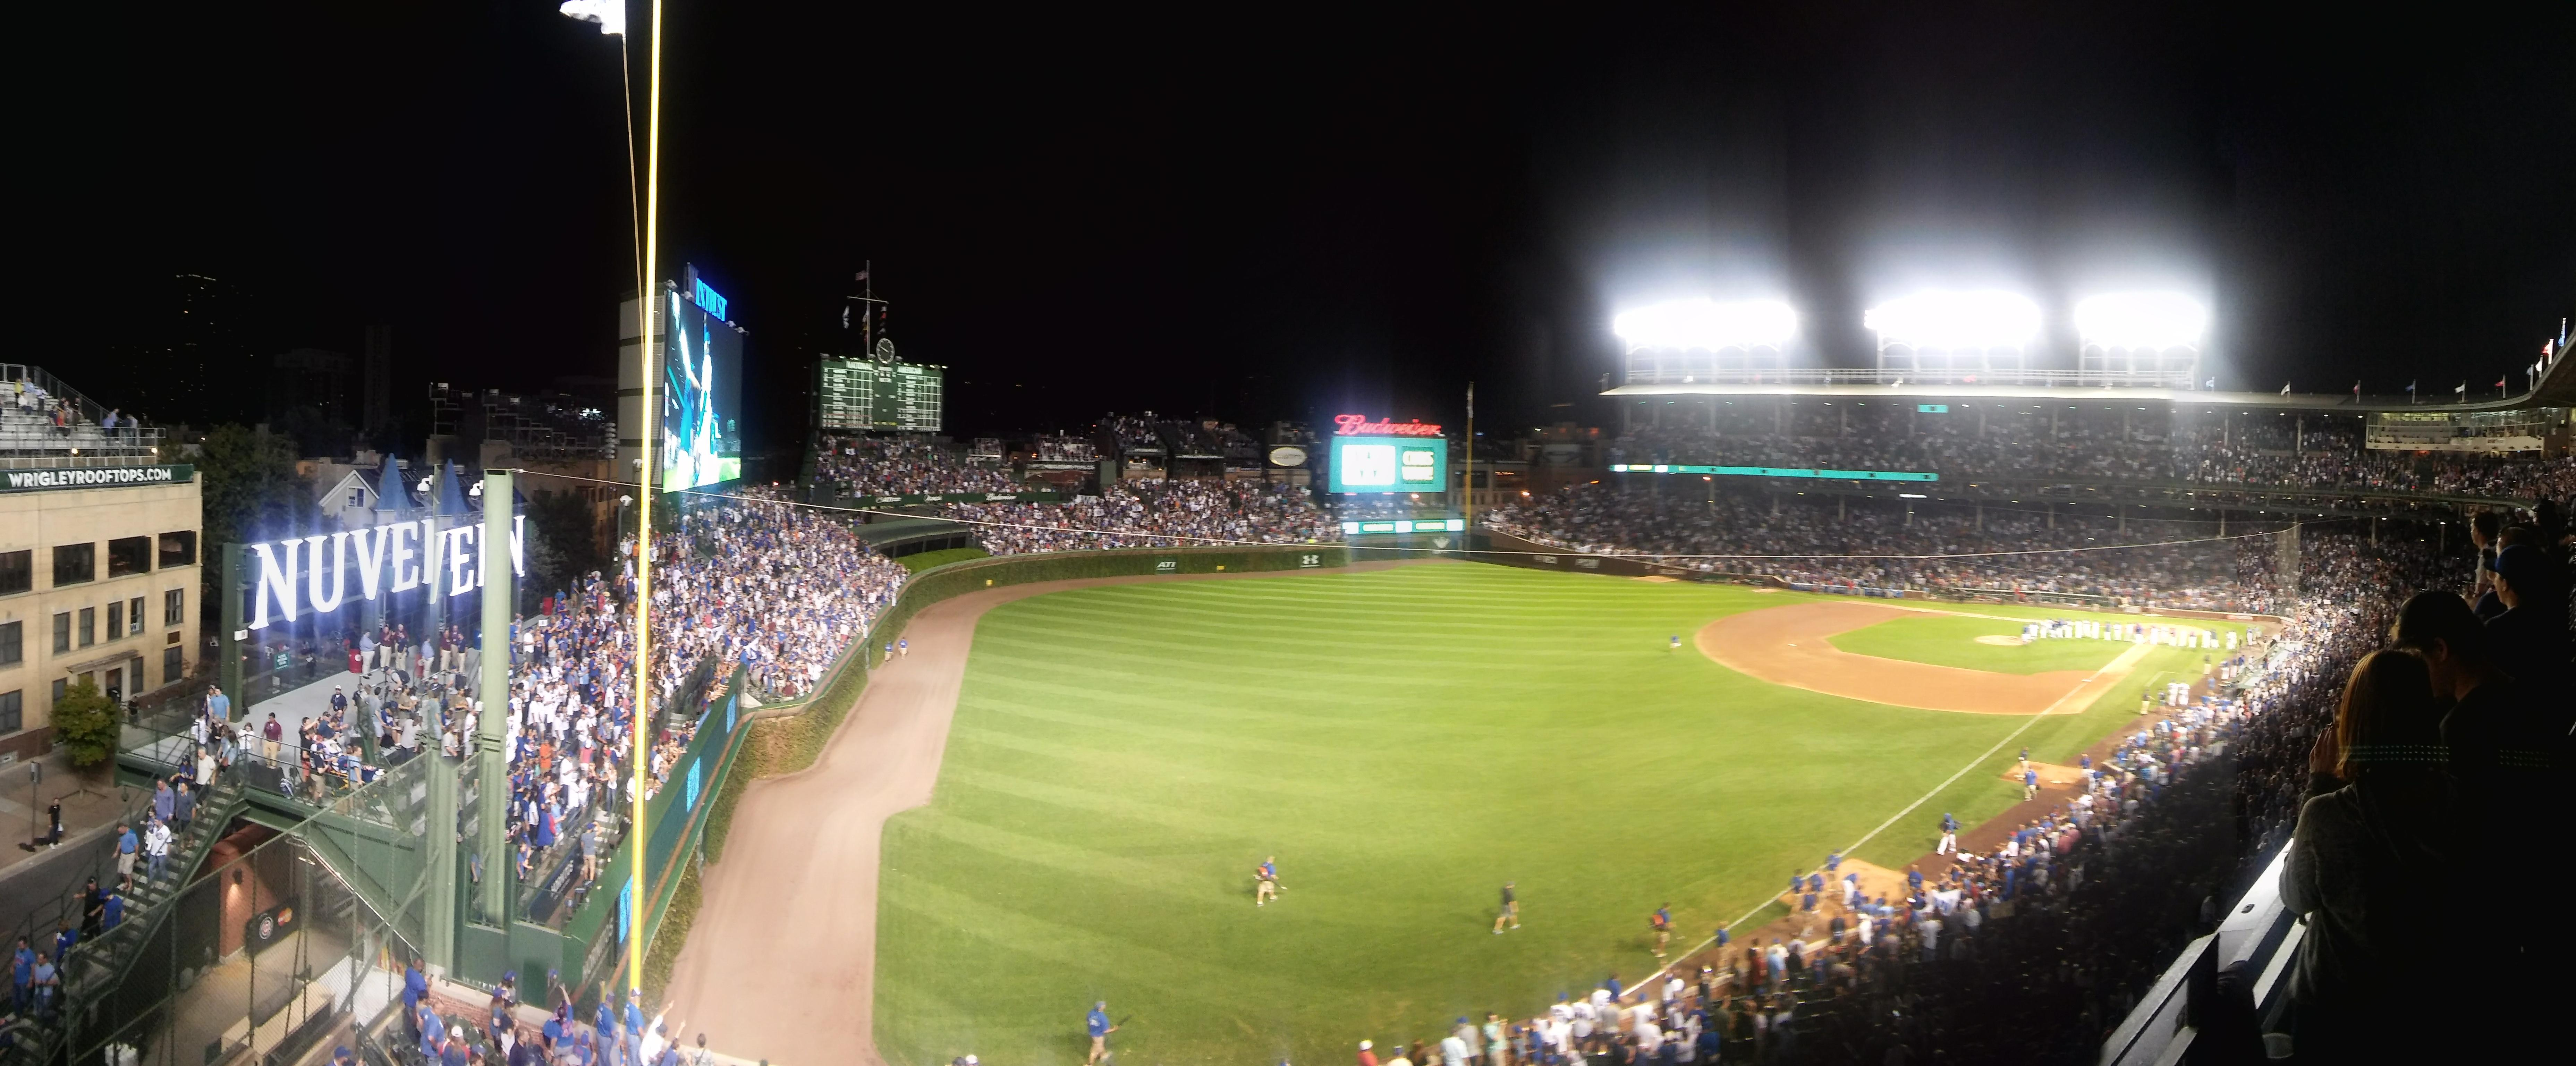 Wrigley Field Section 303L Row 2 Seat 12